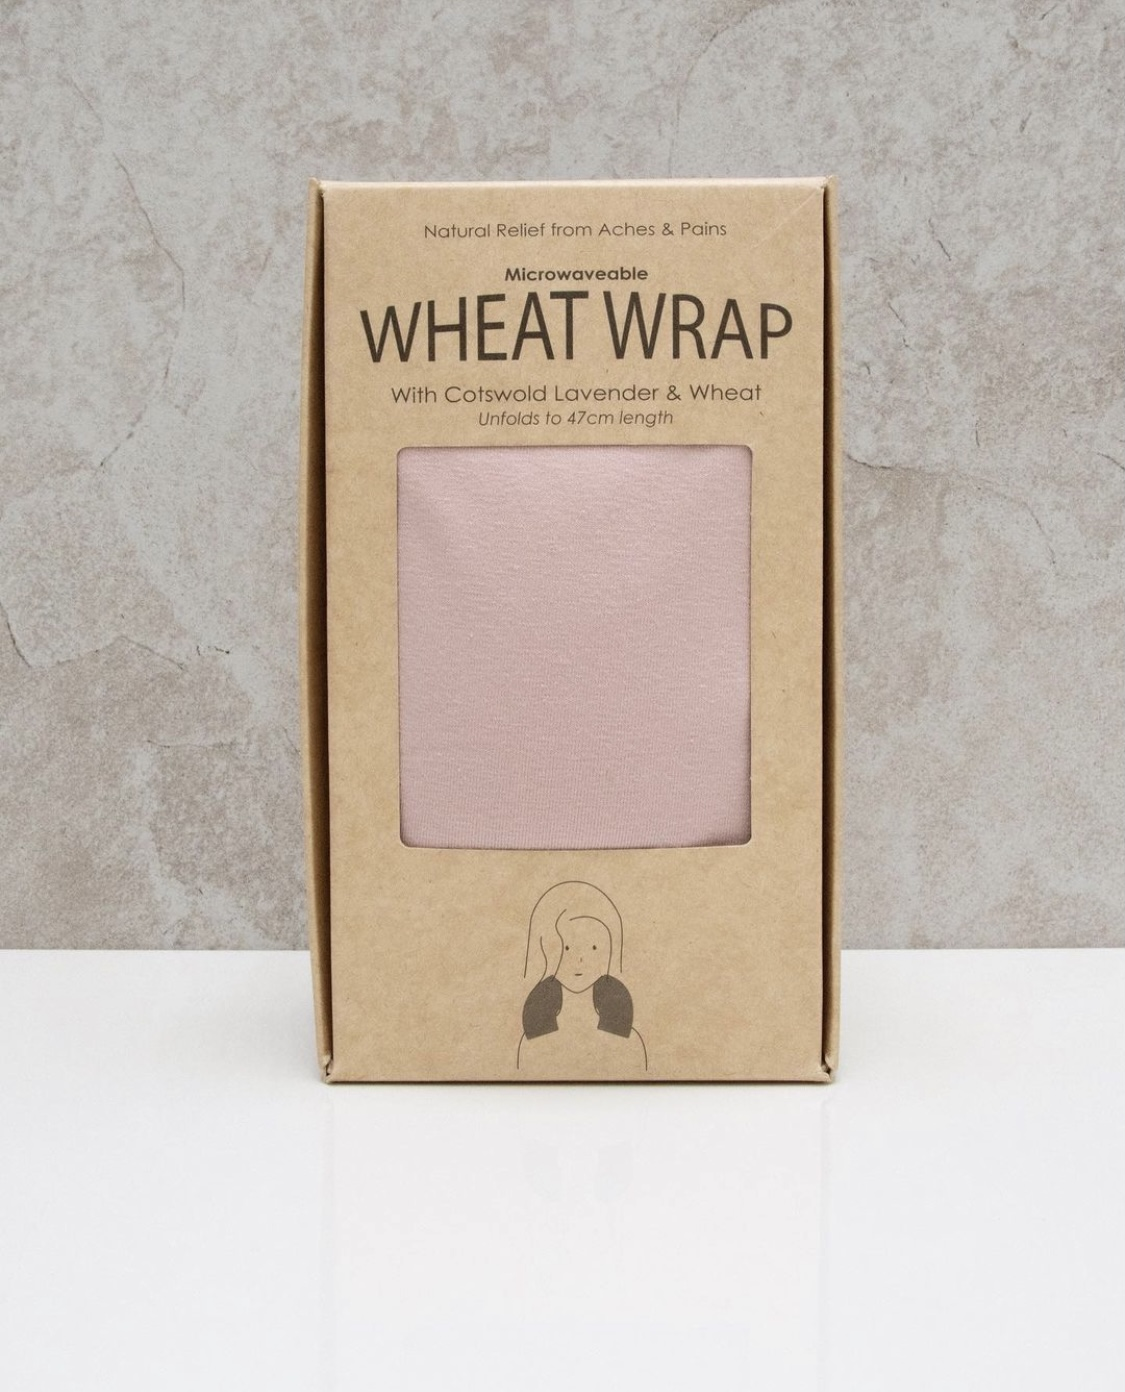 Wheat Wrap - Microwaveable Heat Wrap